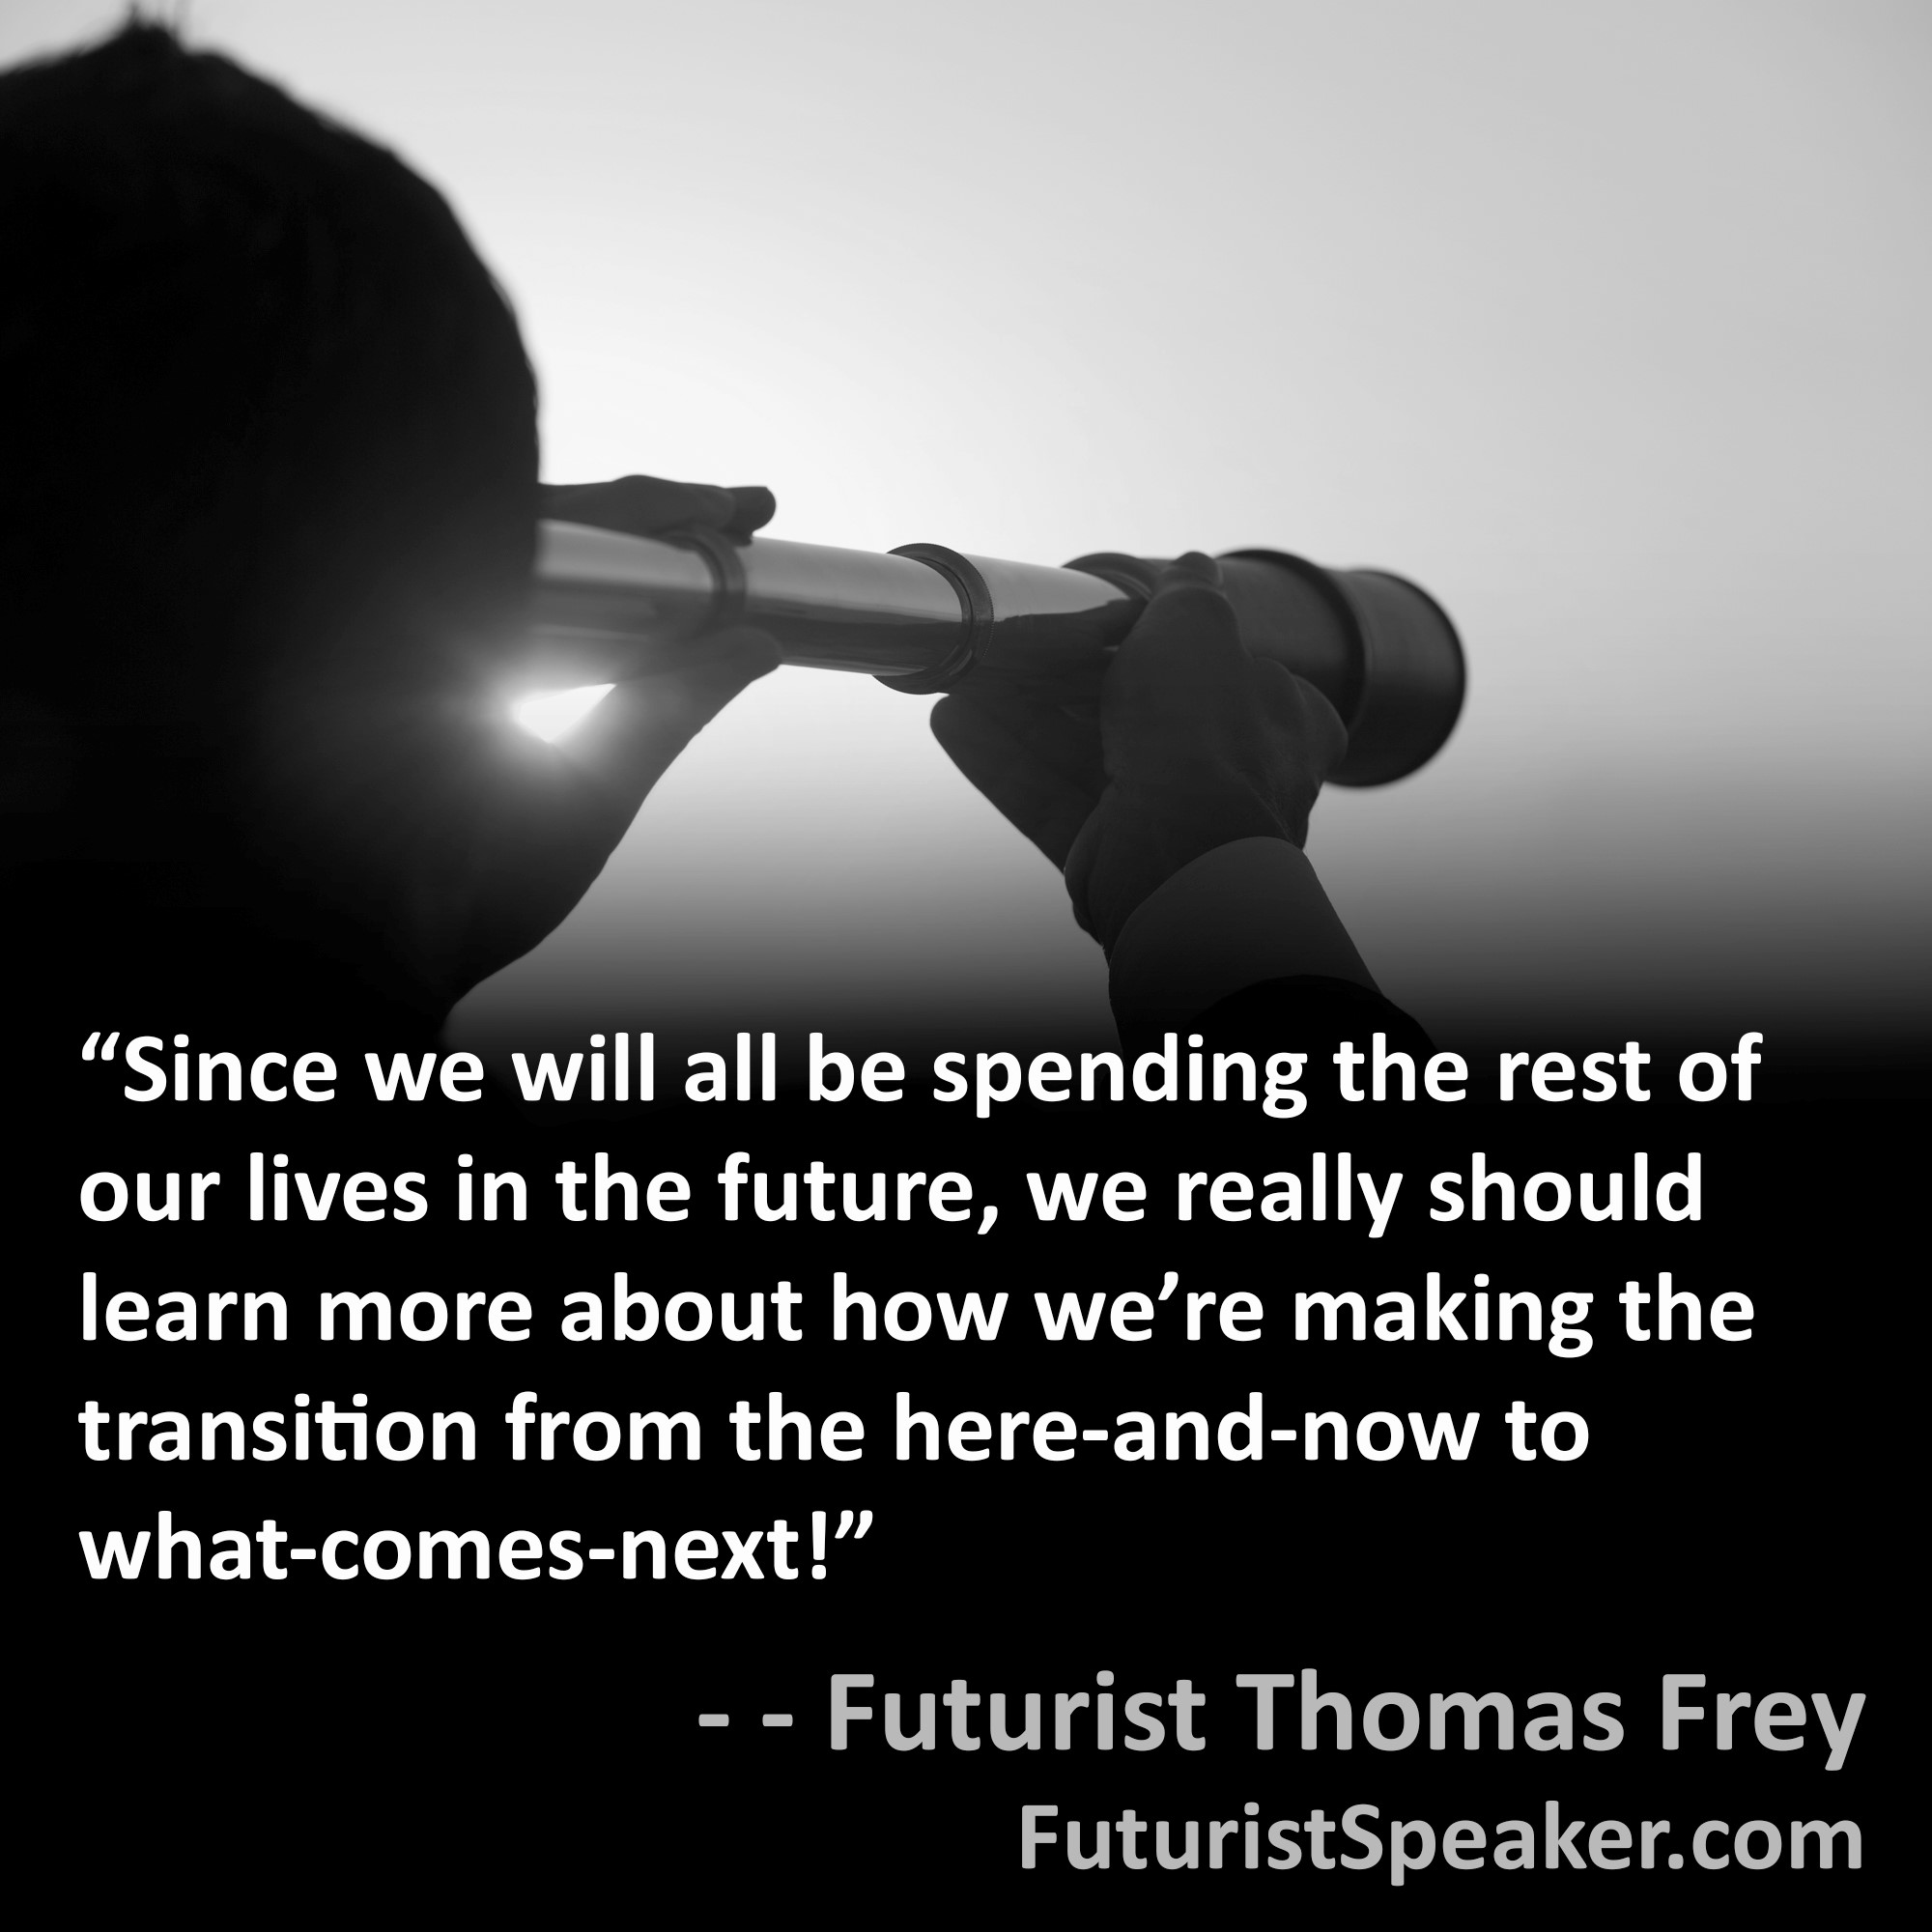 Thomas Frey Futurist Speaker Famous Quote: Since we will all be spending the rest of our lives in the future, we really should learn more about how we are making the transition from the here and now to what comes next.